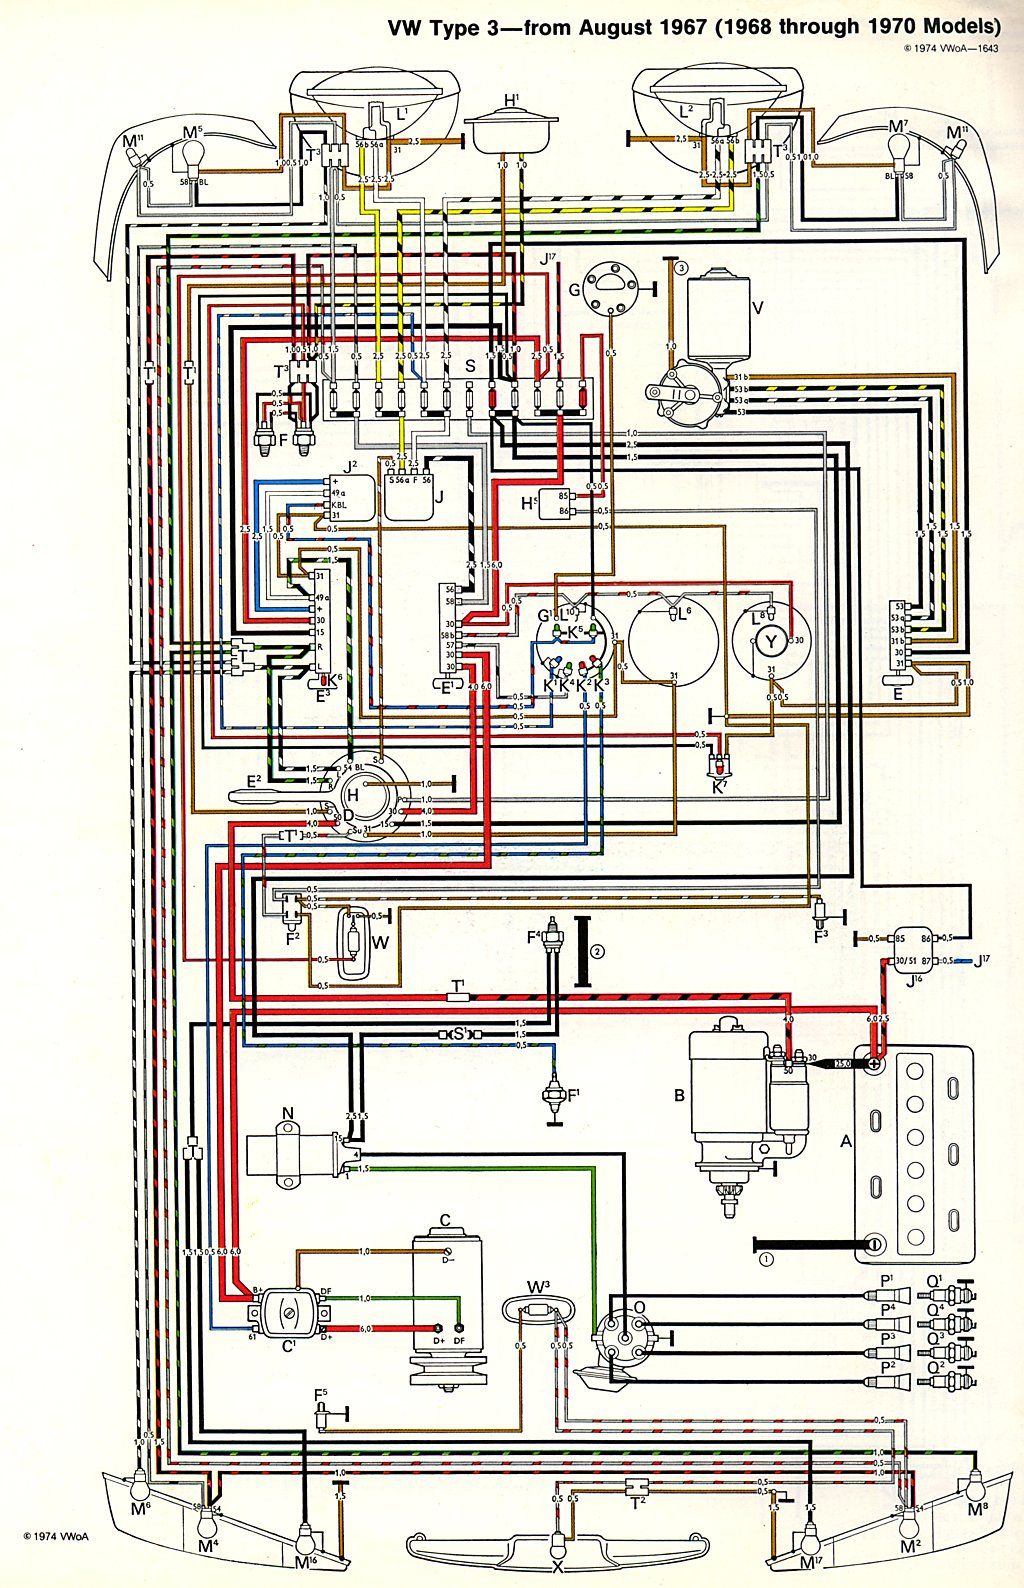 type3_6870 vw thing wiring diagram 1974 beetle heater diagram \u2022 wiring 1971 vw bus wiring diagram at honlapkeszites.co